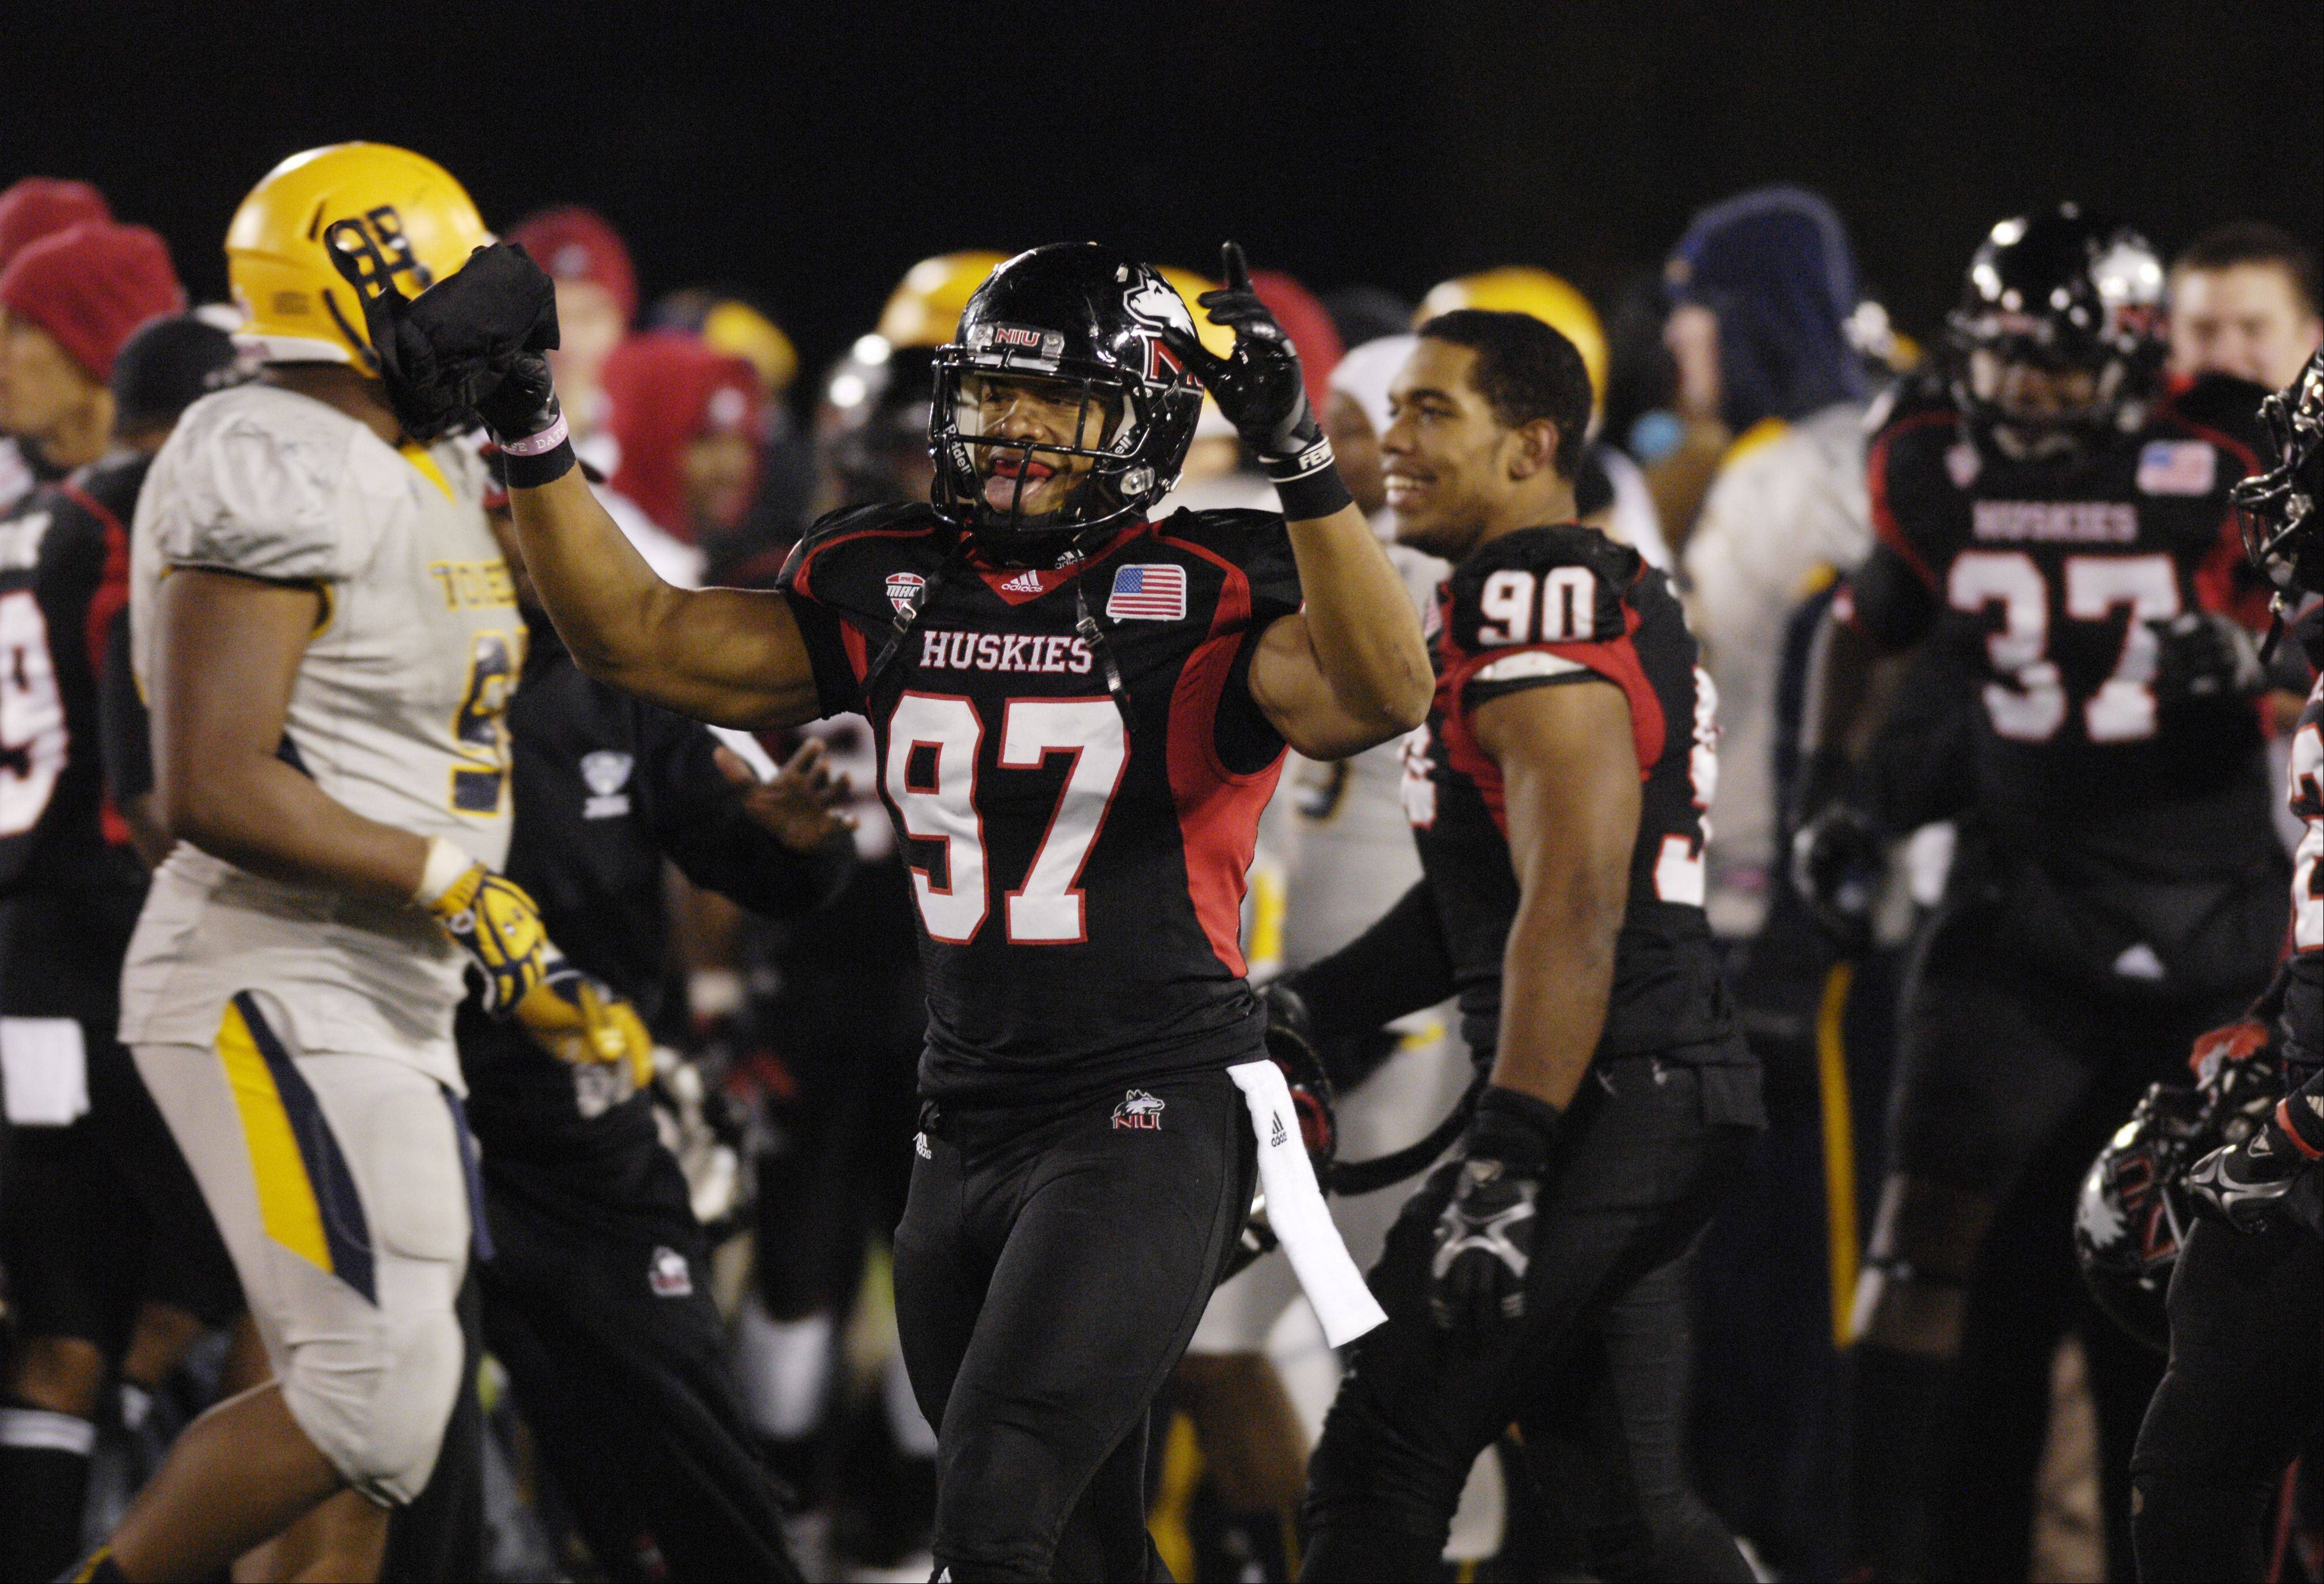 Joe Windsor of Northern Illinois University celebrates with his Huskies teammates after collecting their 10th win of the season, a 31-24 victory of the Toledo Rockets in DeKalb on Wednesday.